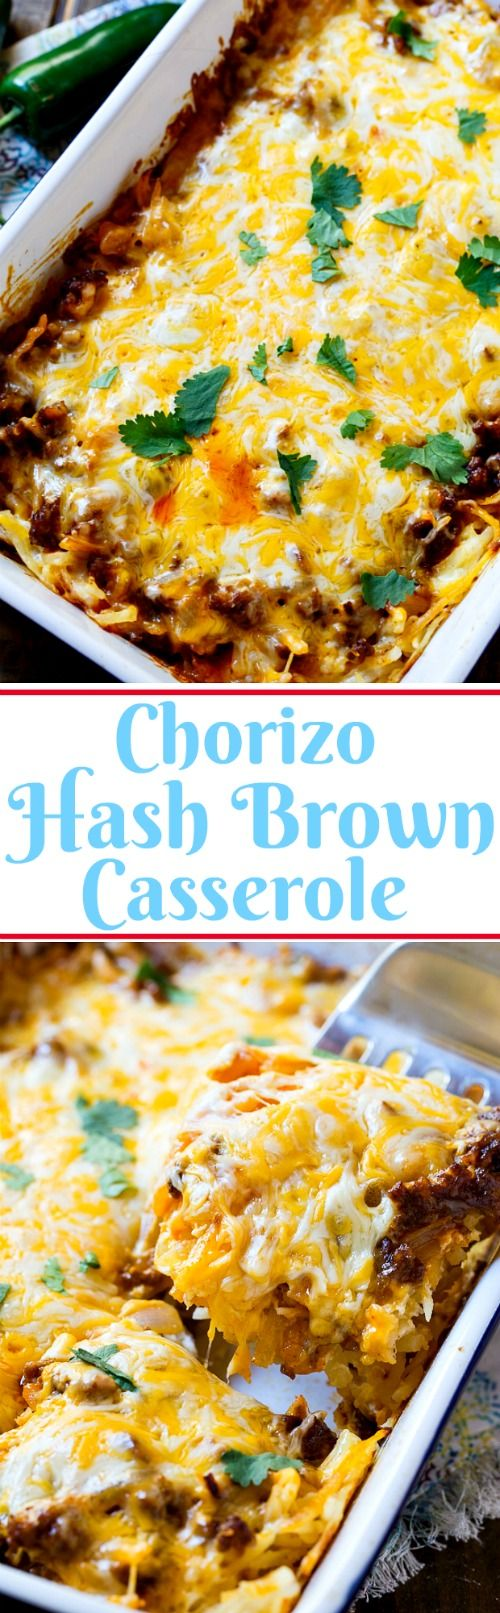 Chorizo Hash Brown Casserole is perfect for when you want a bold and spicy brunch casserole. #SimplyHolidays #ad